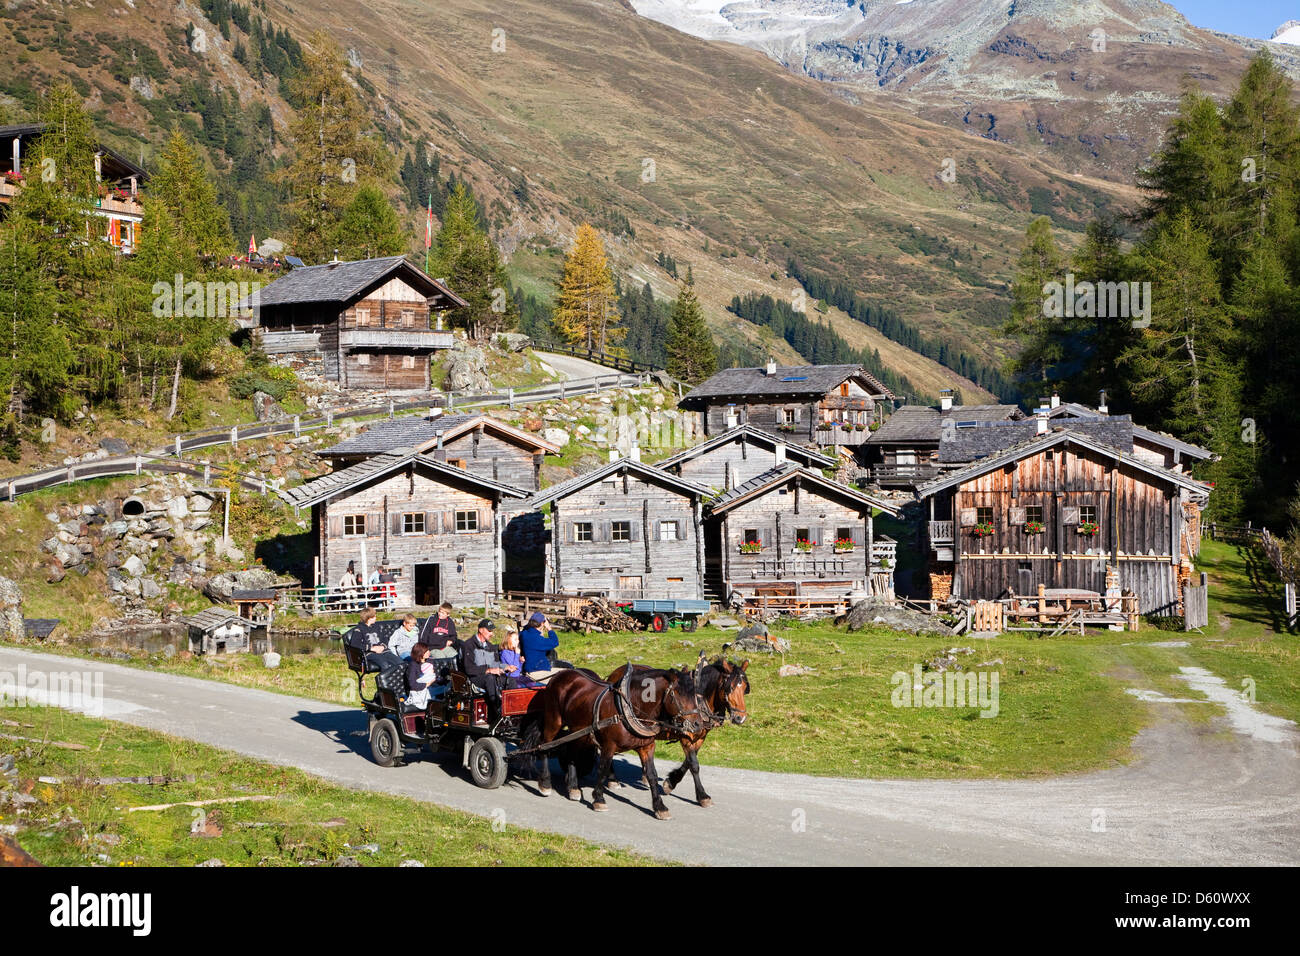 The alp Aussergschloess in East Tyrol, national park Hohe Tauern, with tourists in a horse drawn carriage. East - Stock Image